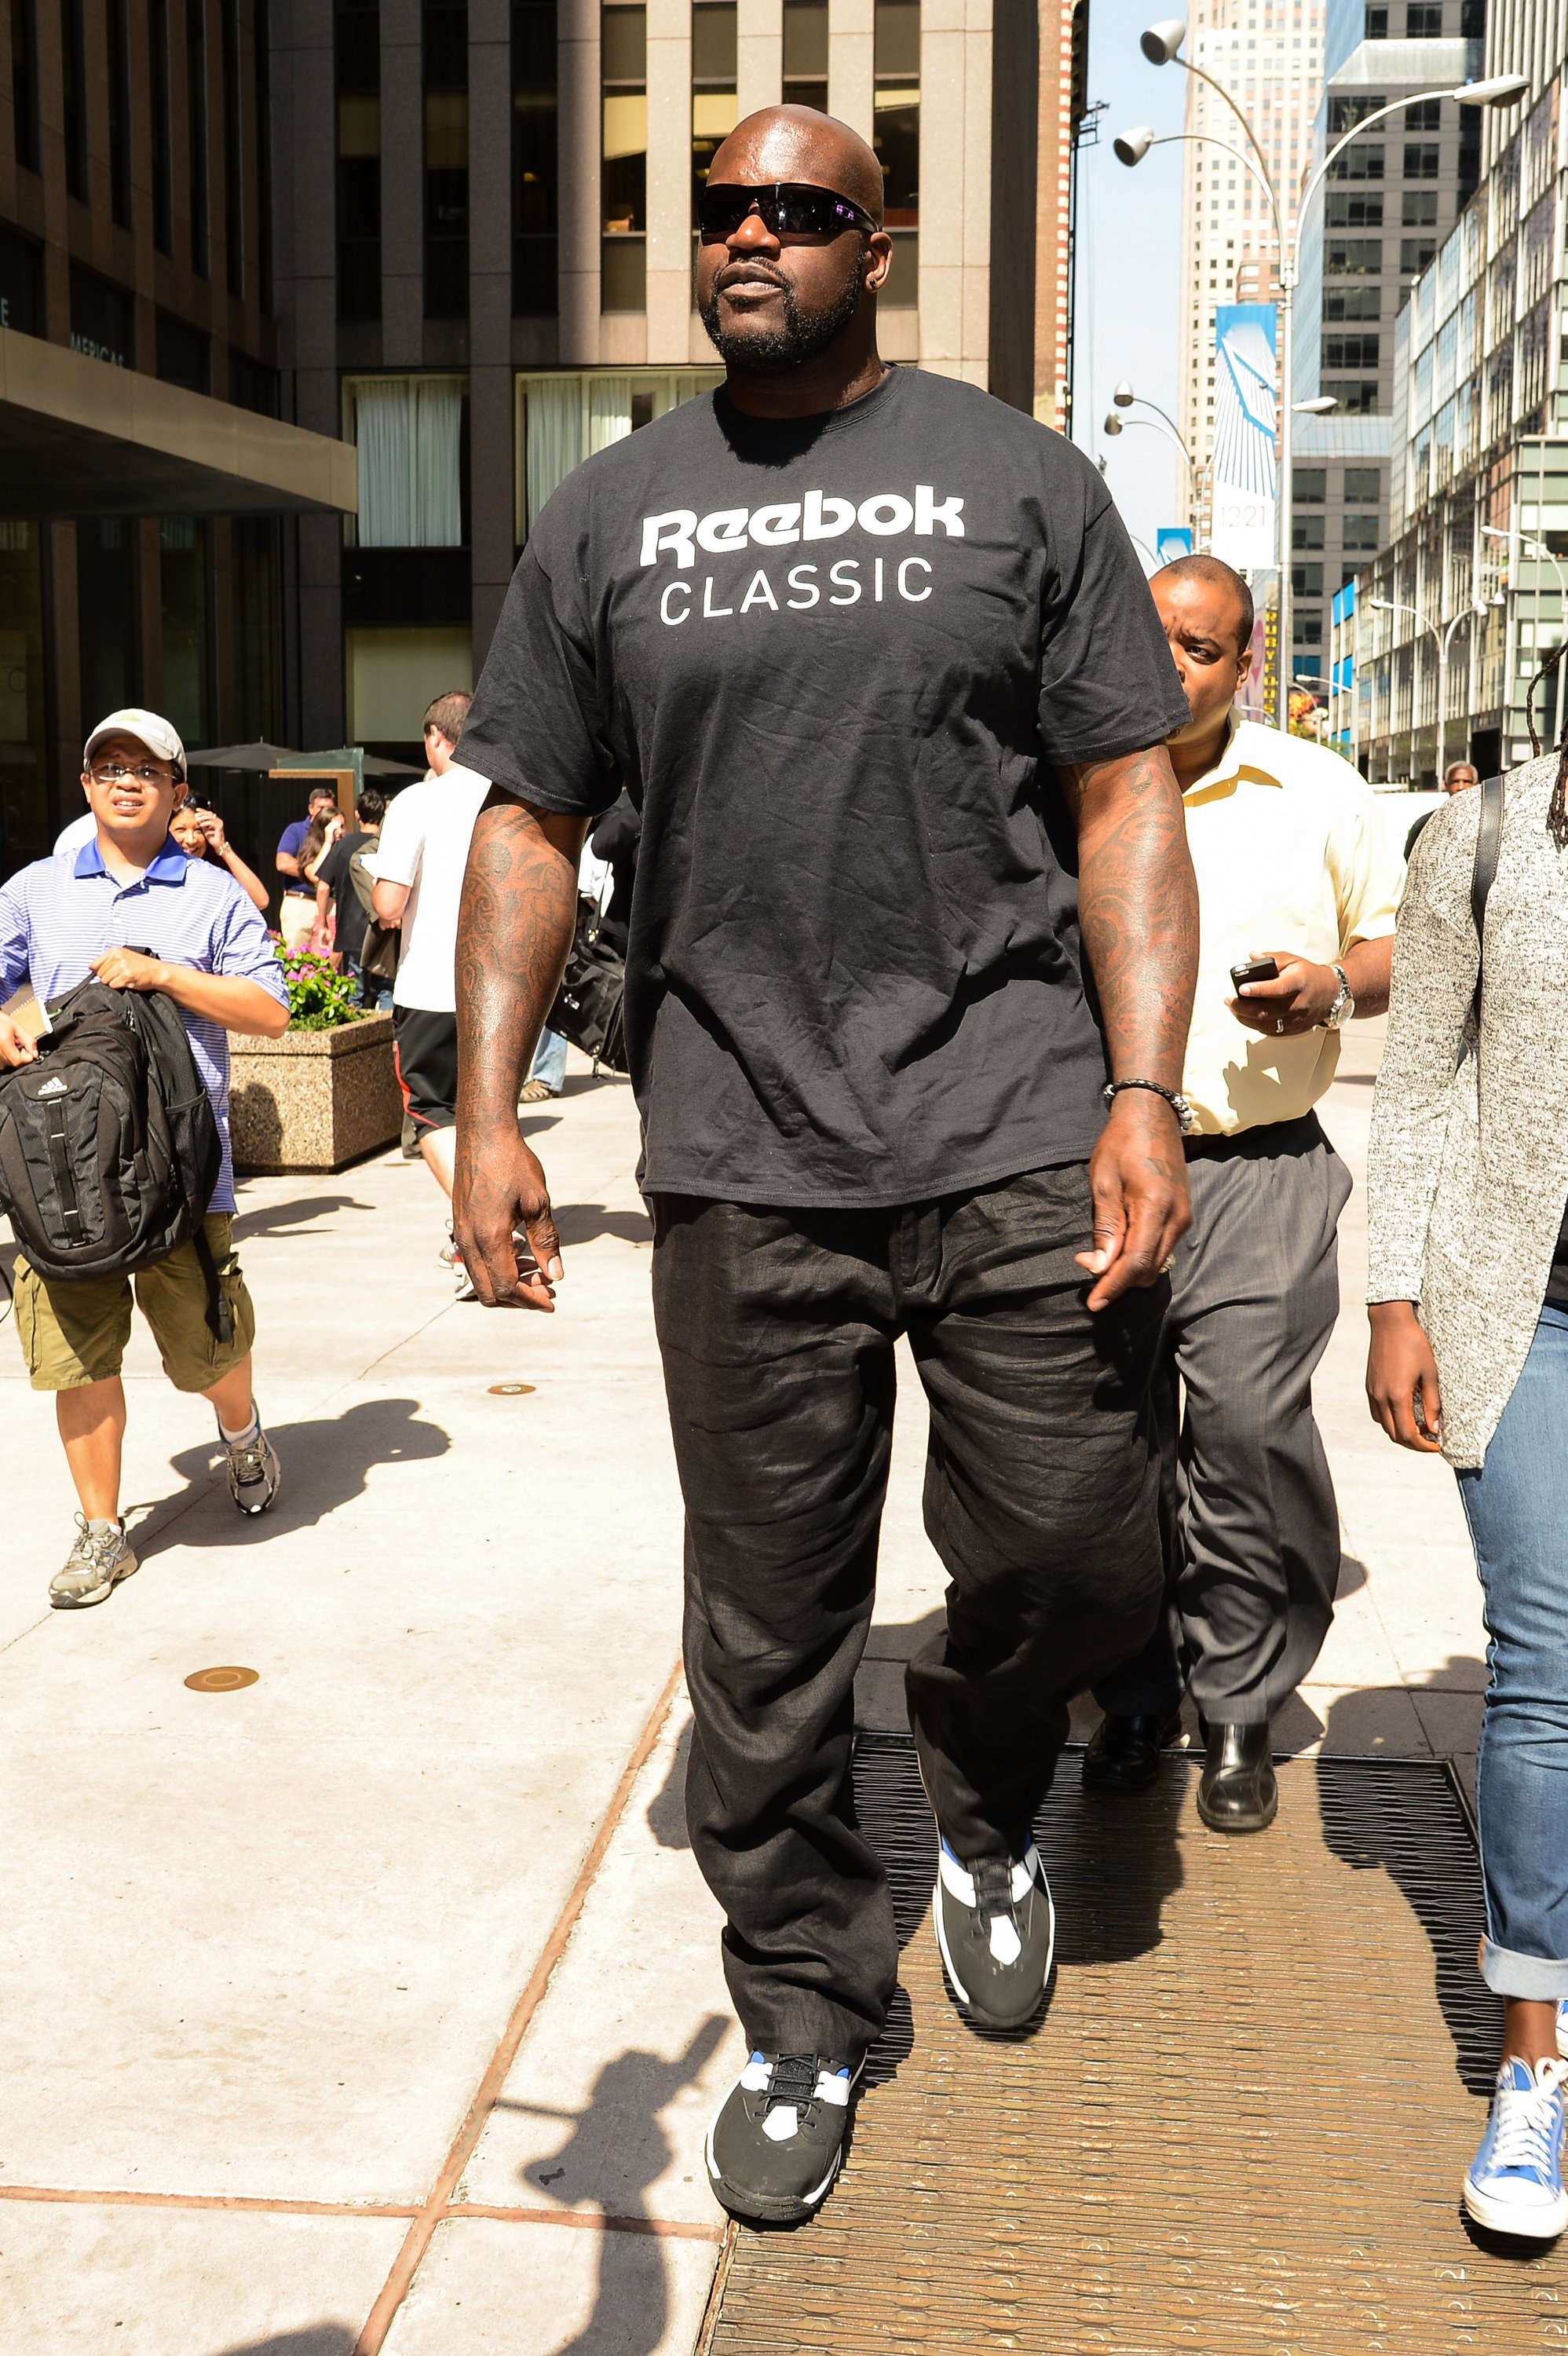 Television personality and former professional basketball player Shaquille O'Neal leaves the Sirius XM Studios in New York City on Aug. 11, 2014.